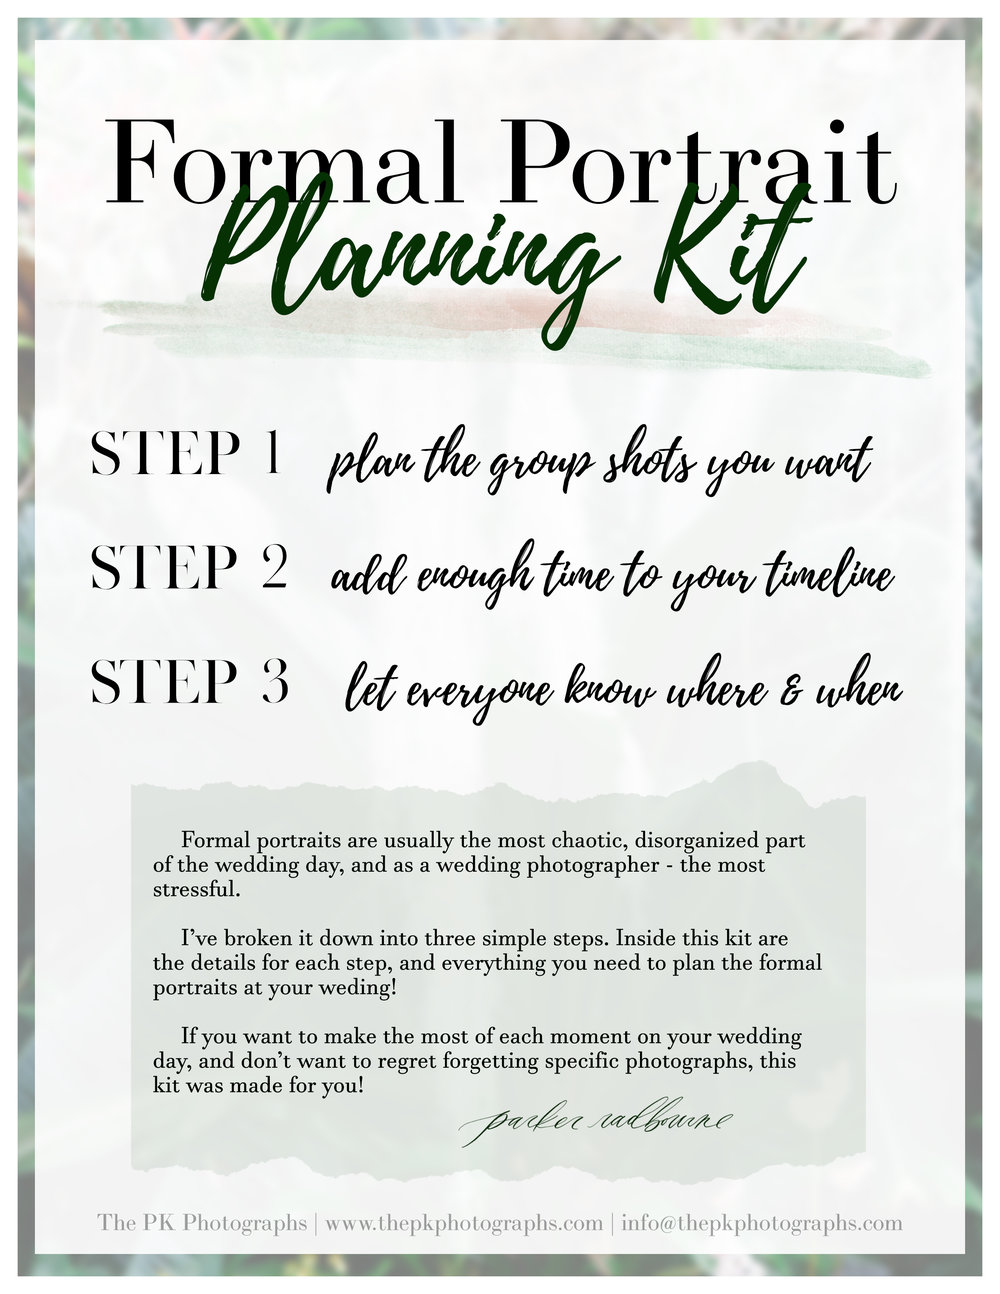 formal-portrait-planning-kit-the-pk-photographs.jpg